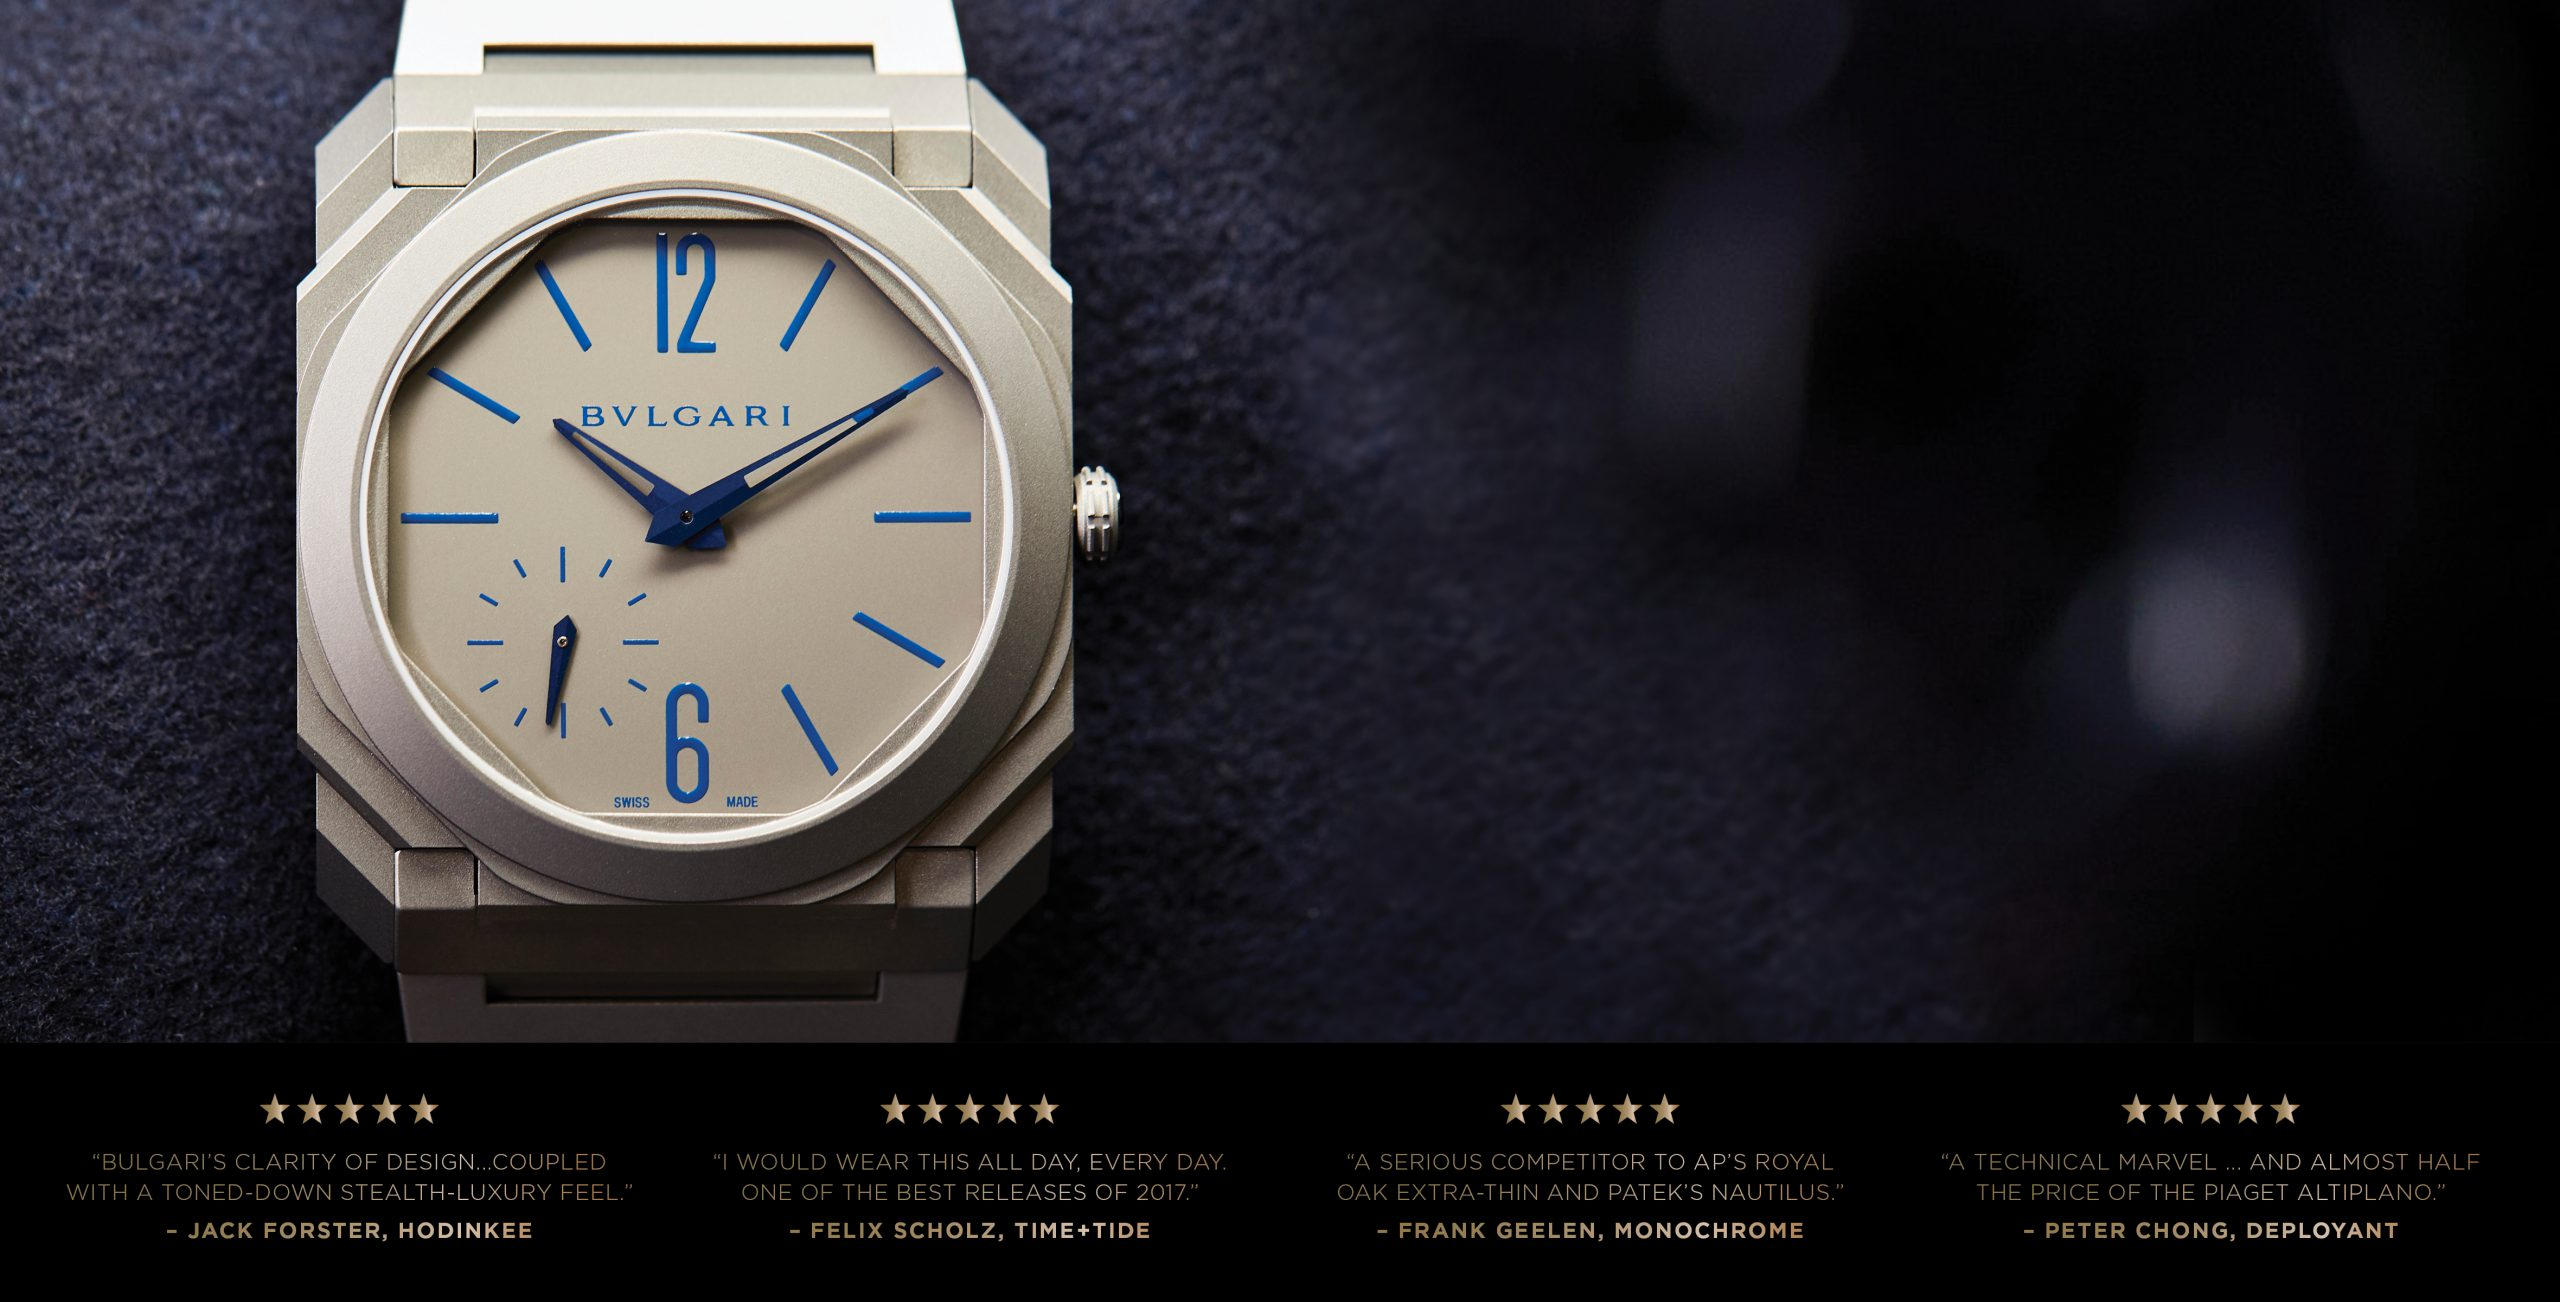 ANNOUNCING: Our shop is the only place in Australia you can buy the limited Bulgari Octo Finissimo Automatic Blue